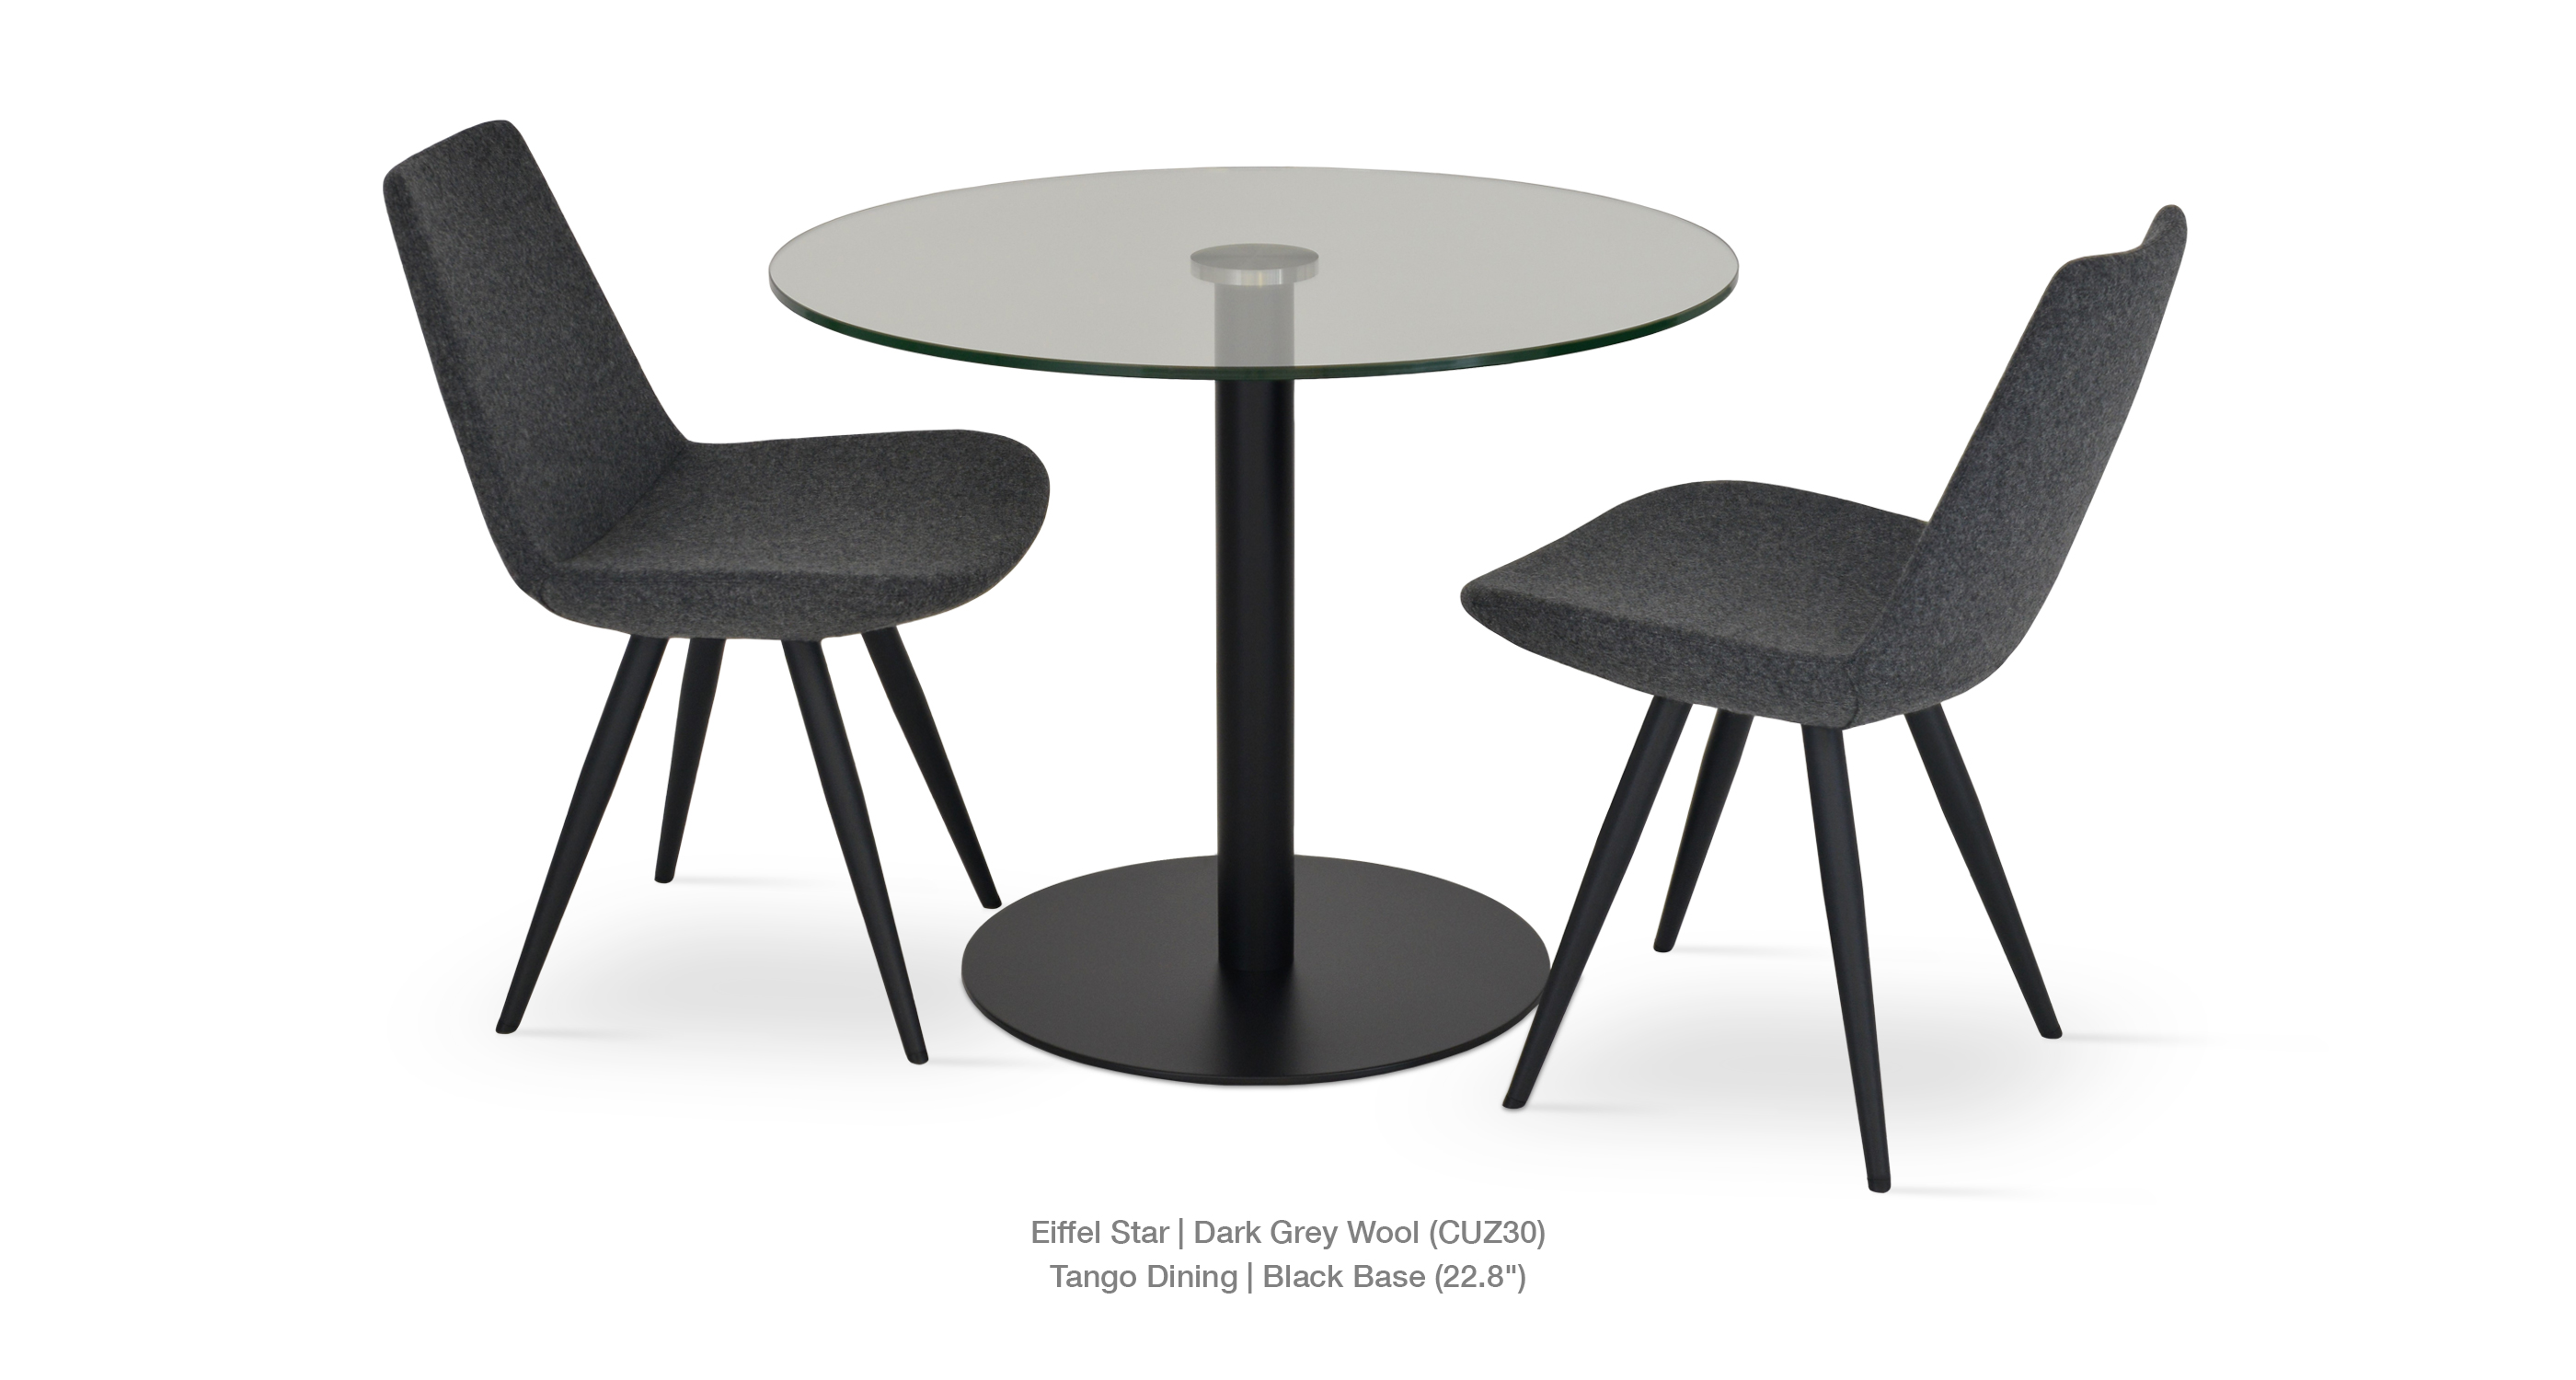 dark grey wool - tango dining black base